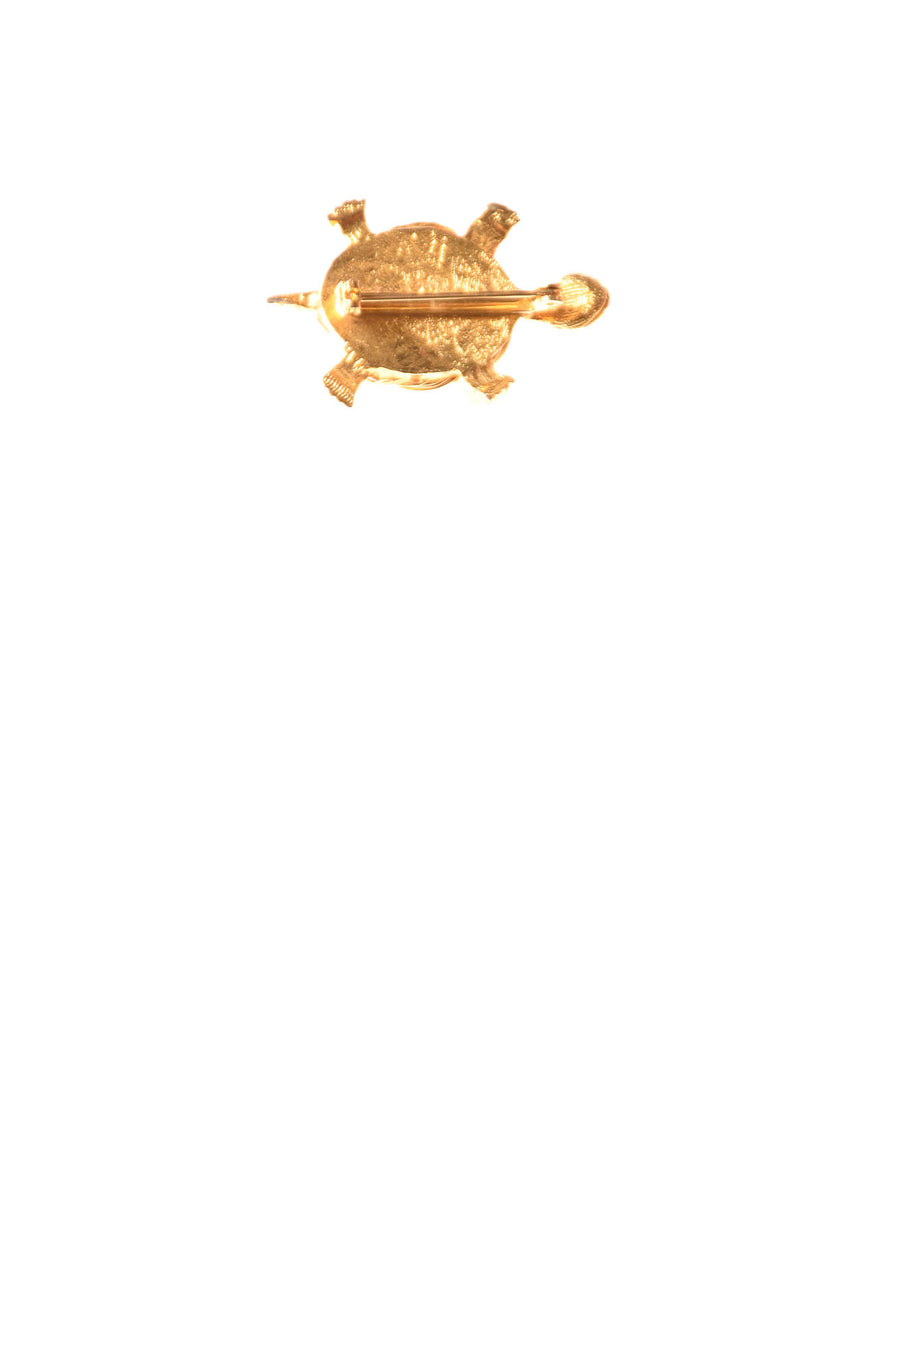 USED No Brand Women's Lapel Pin N/A Goldtone